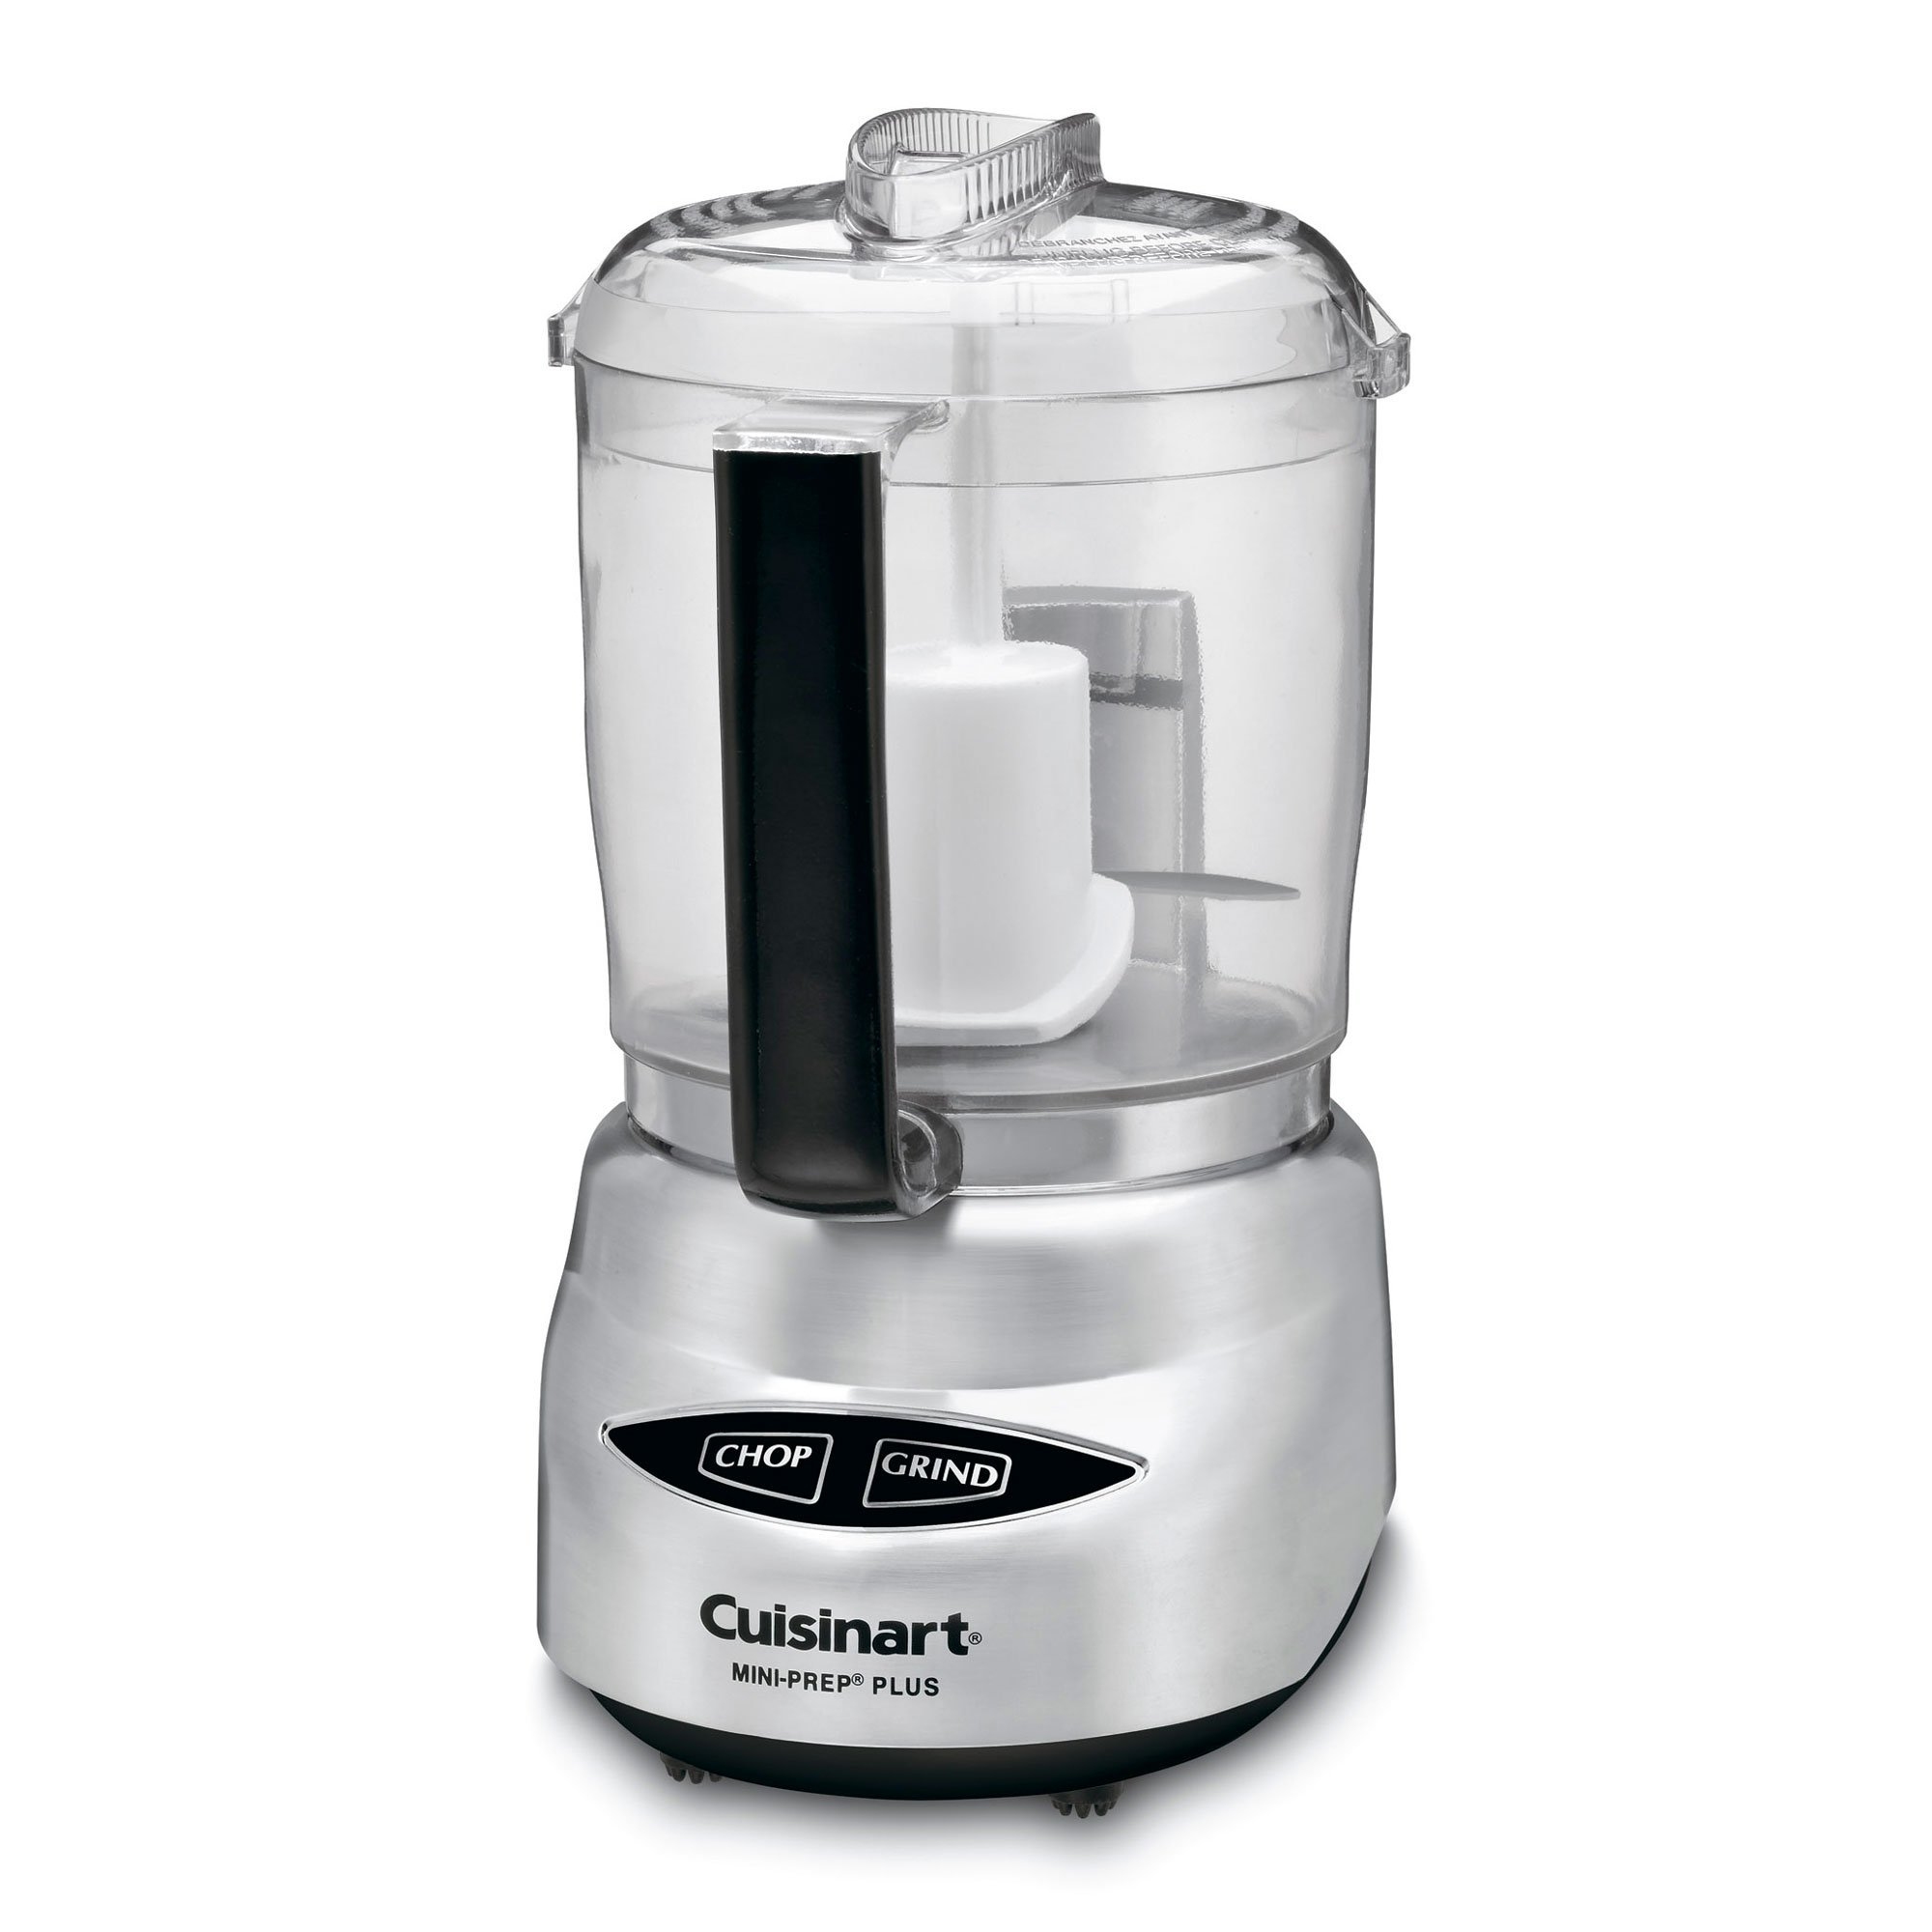 Cuisinart DLC-4CHB Mini-Prep Plus 4-Cup Food Processor, Brushed Stainless Steel (Certified Refurbished) by Cuisinart